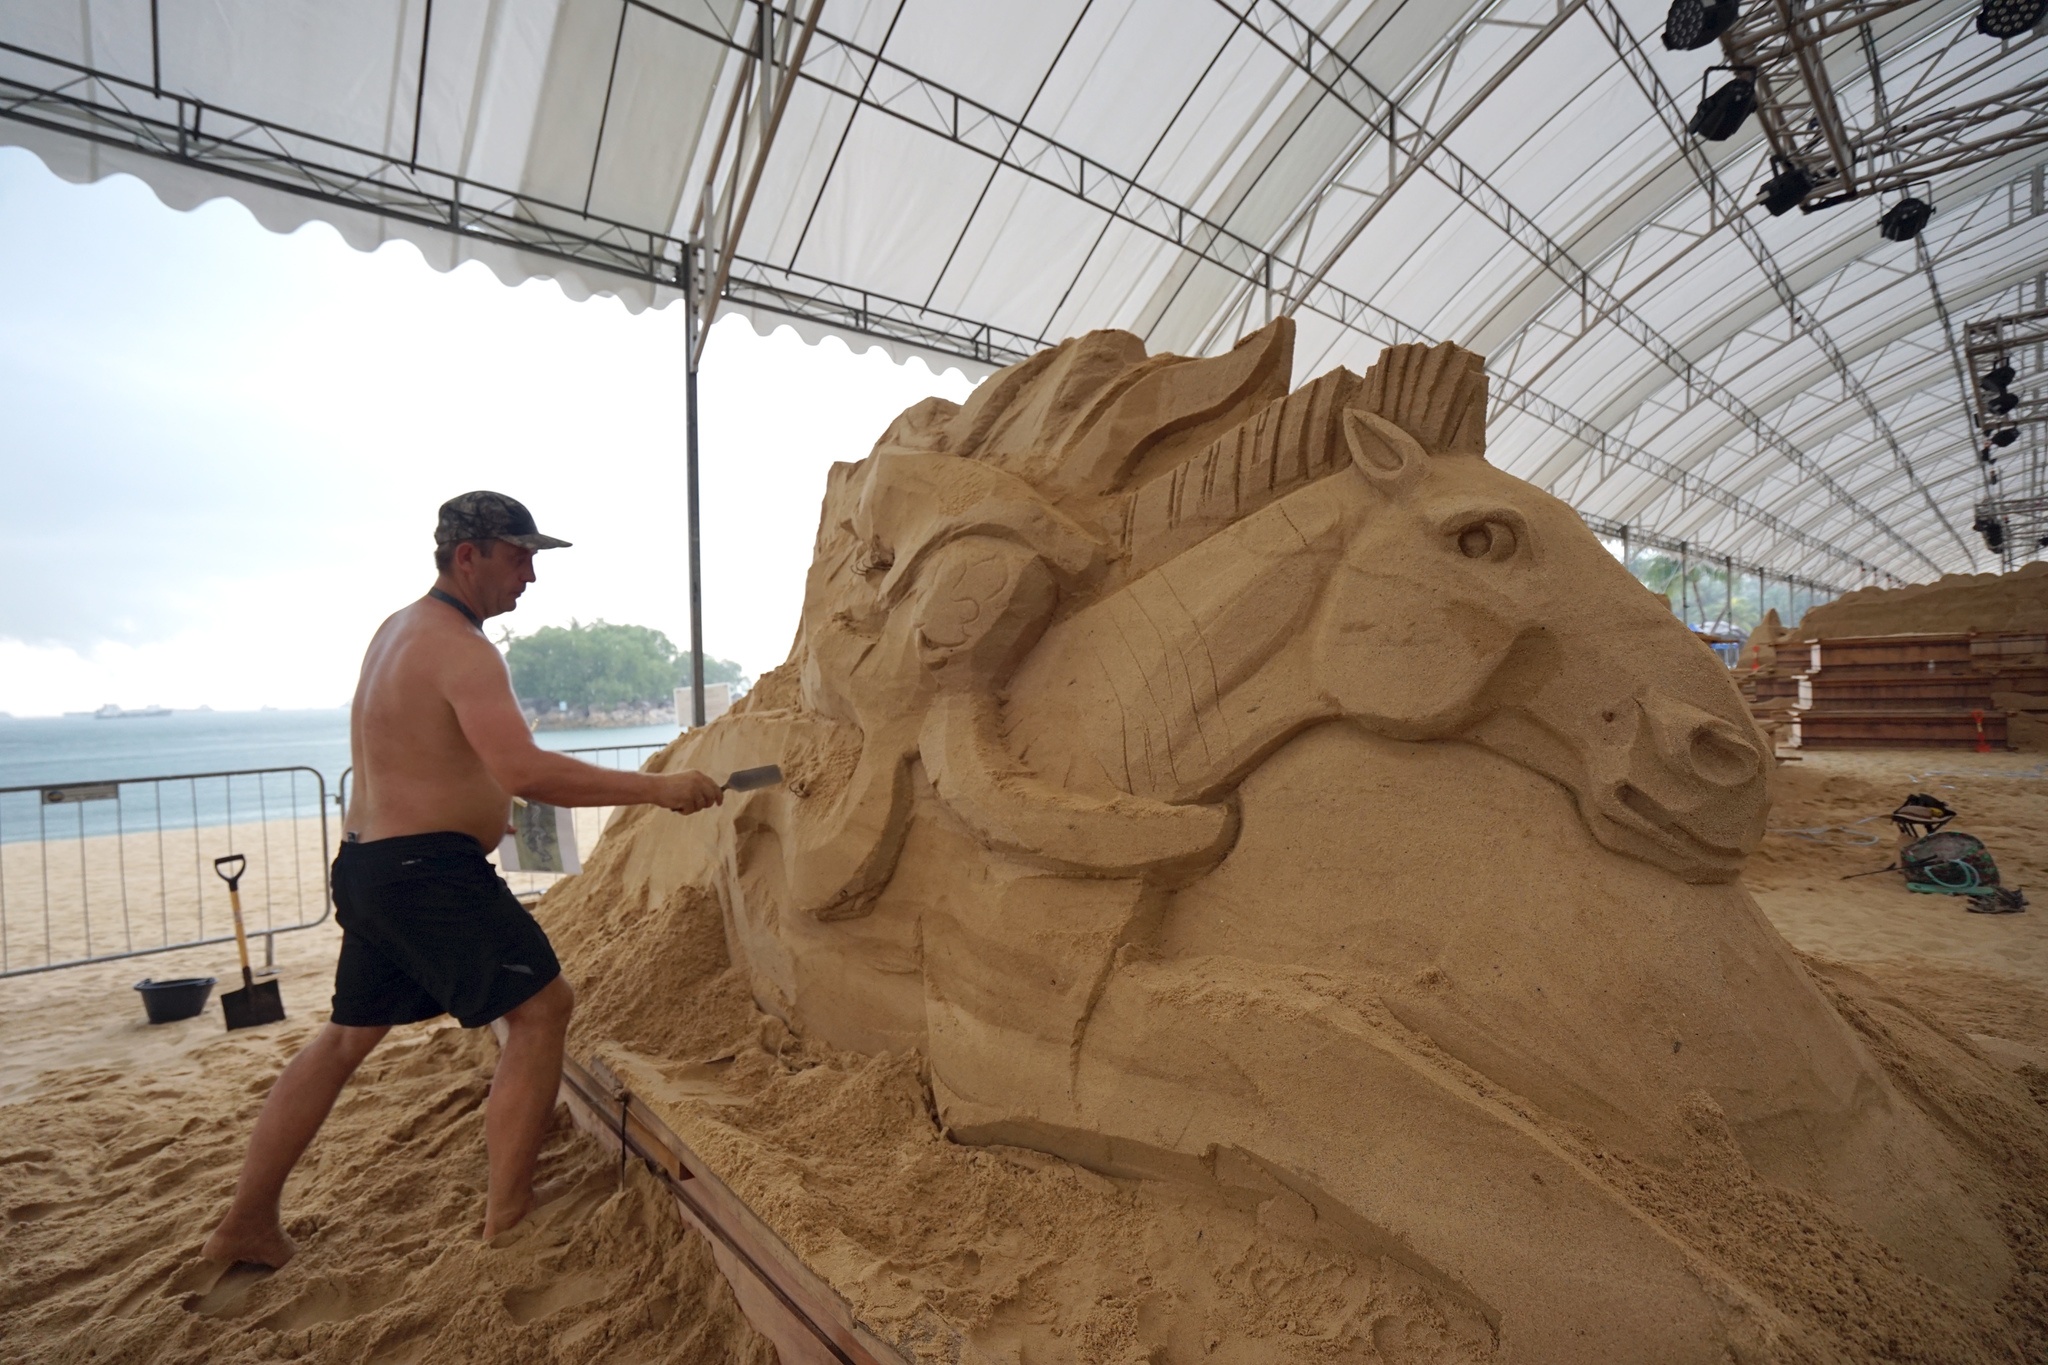 Artists giving final touches to the sand sculptor on Siloso Beach in Singapore.